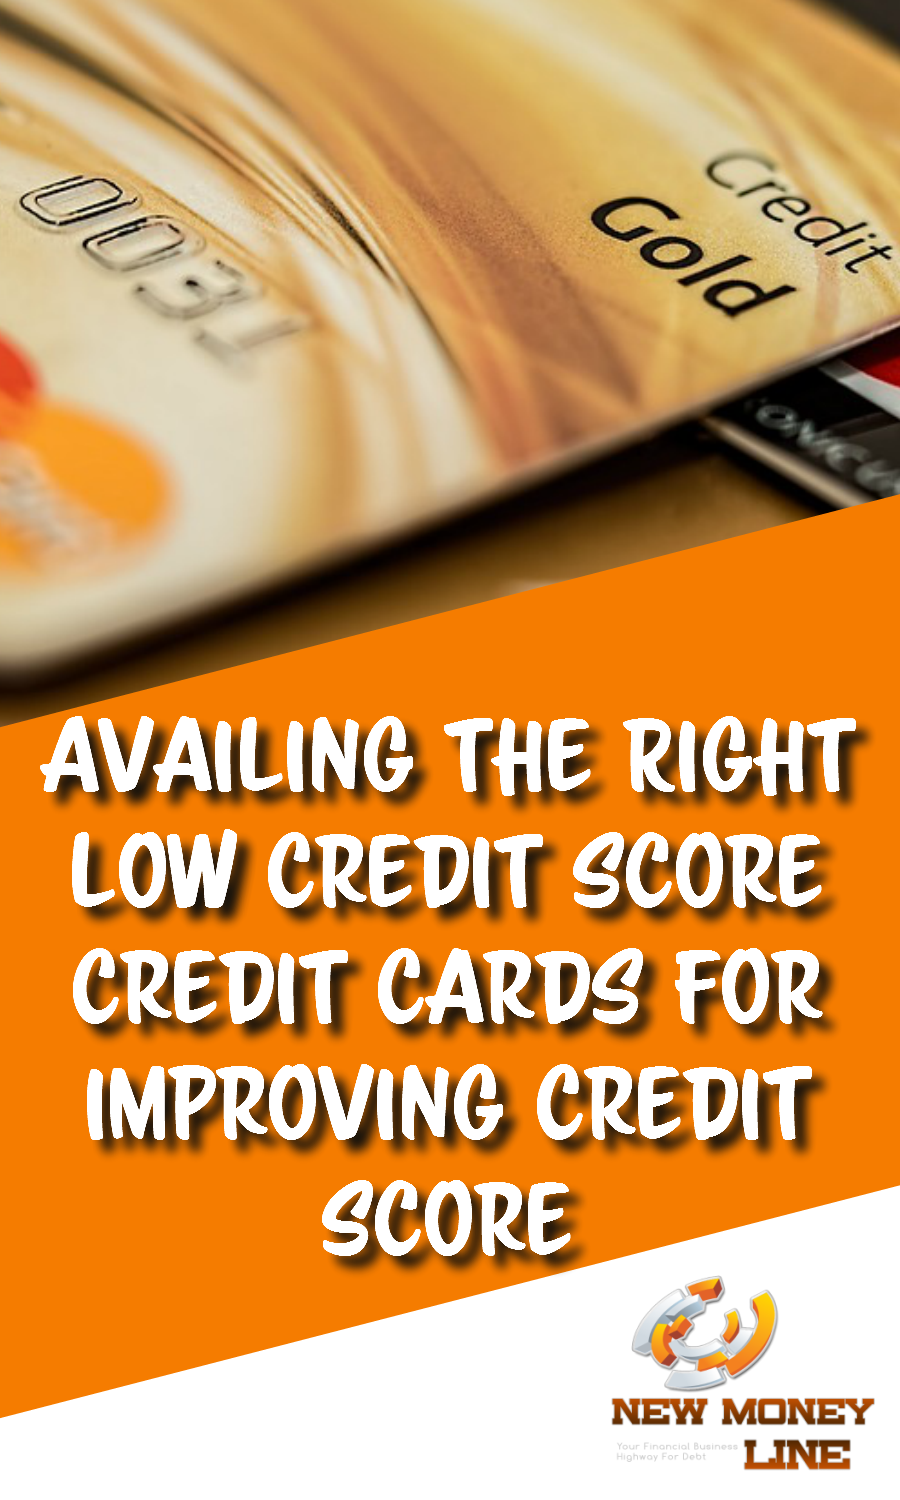 Availing The Right Low Credit Score Credit Cards For Improving Credit Score